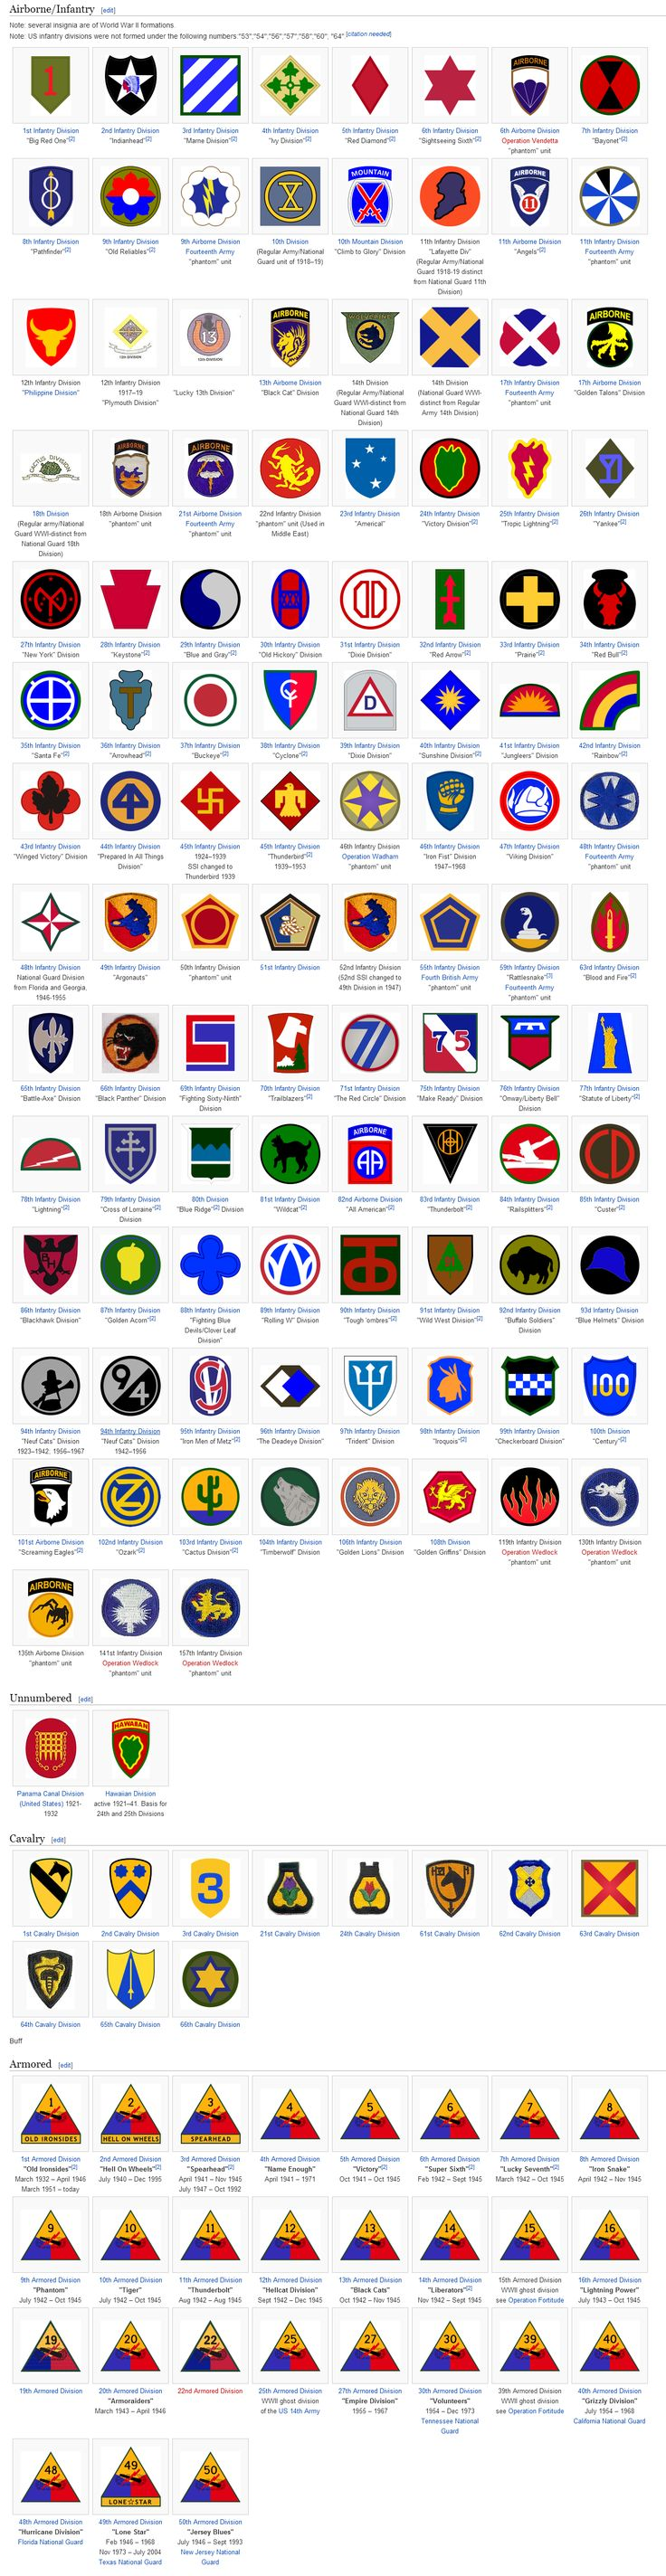 Clipart us army map symbols graphic freeuse library Clipart us army map symbols - ClipartFox graphic freeuse library